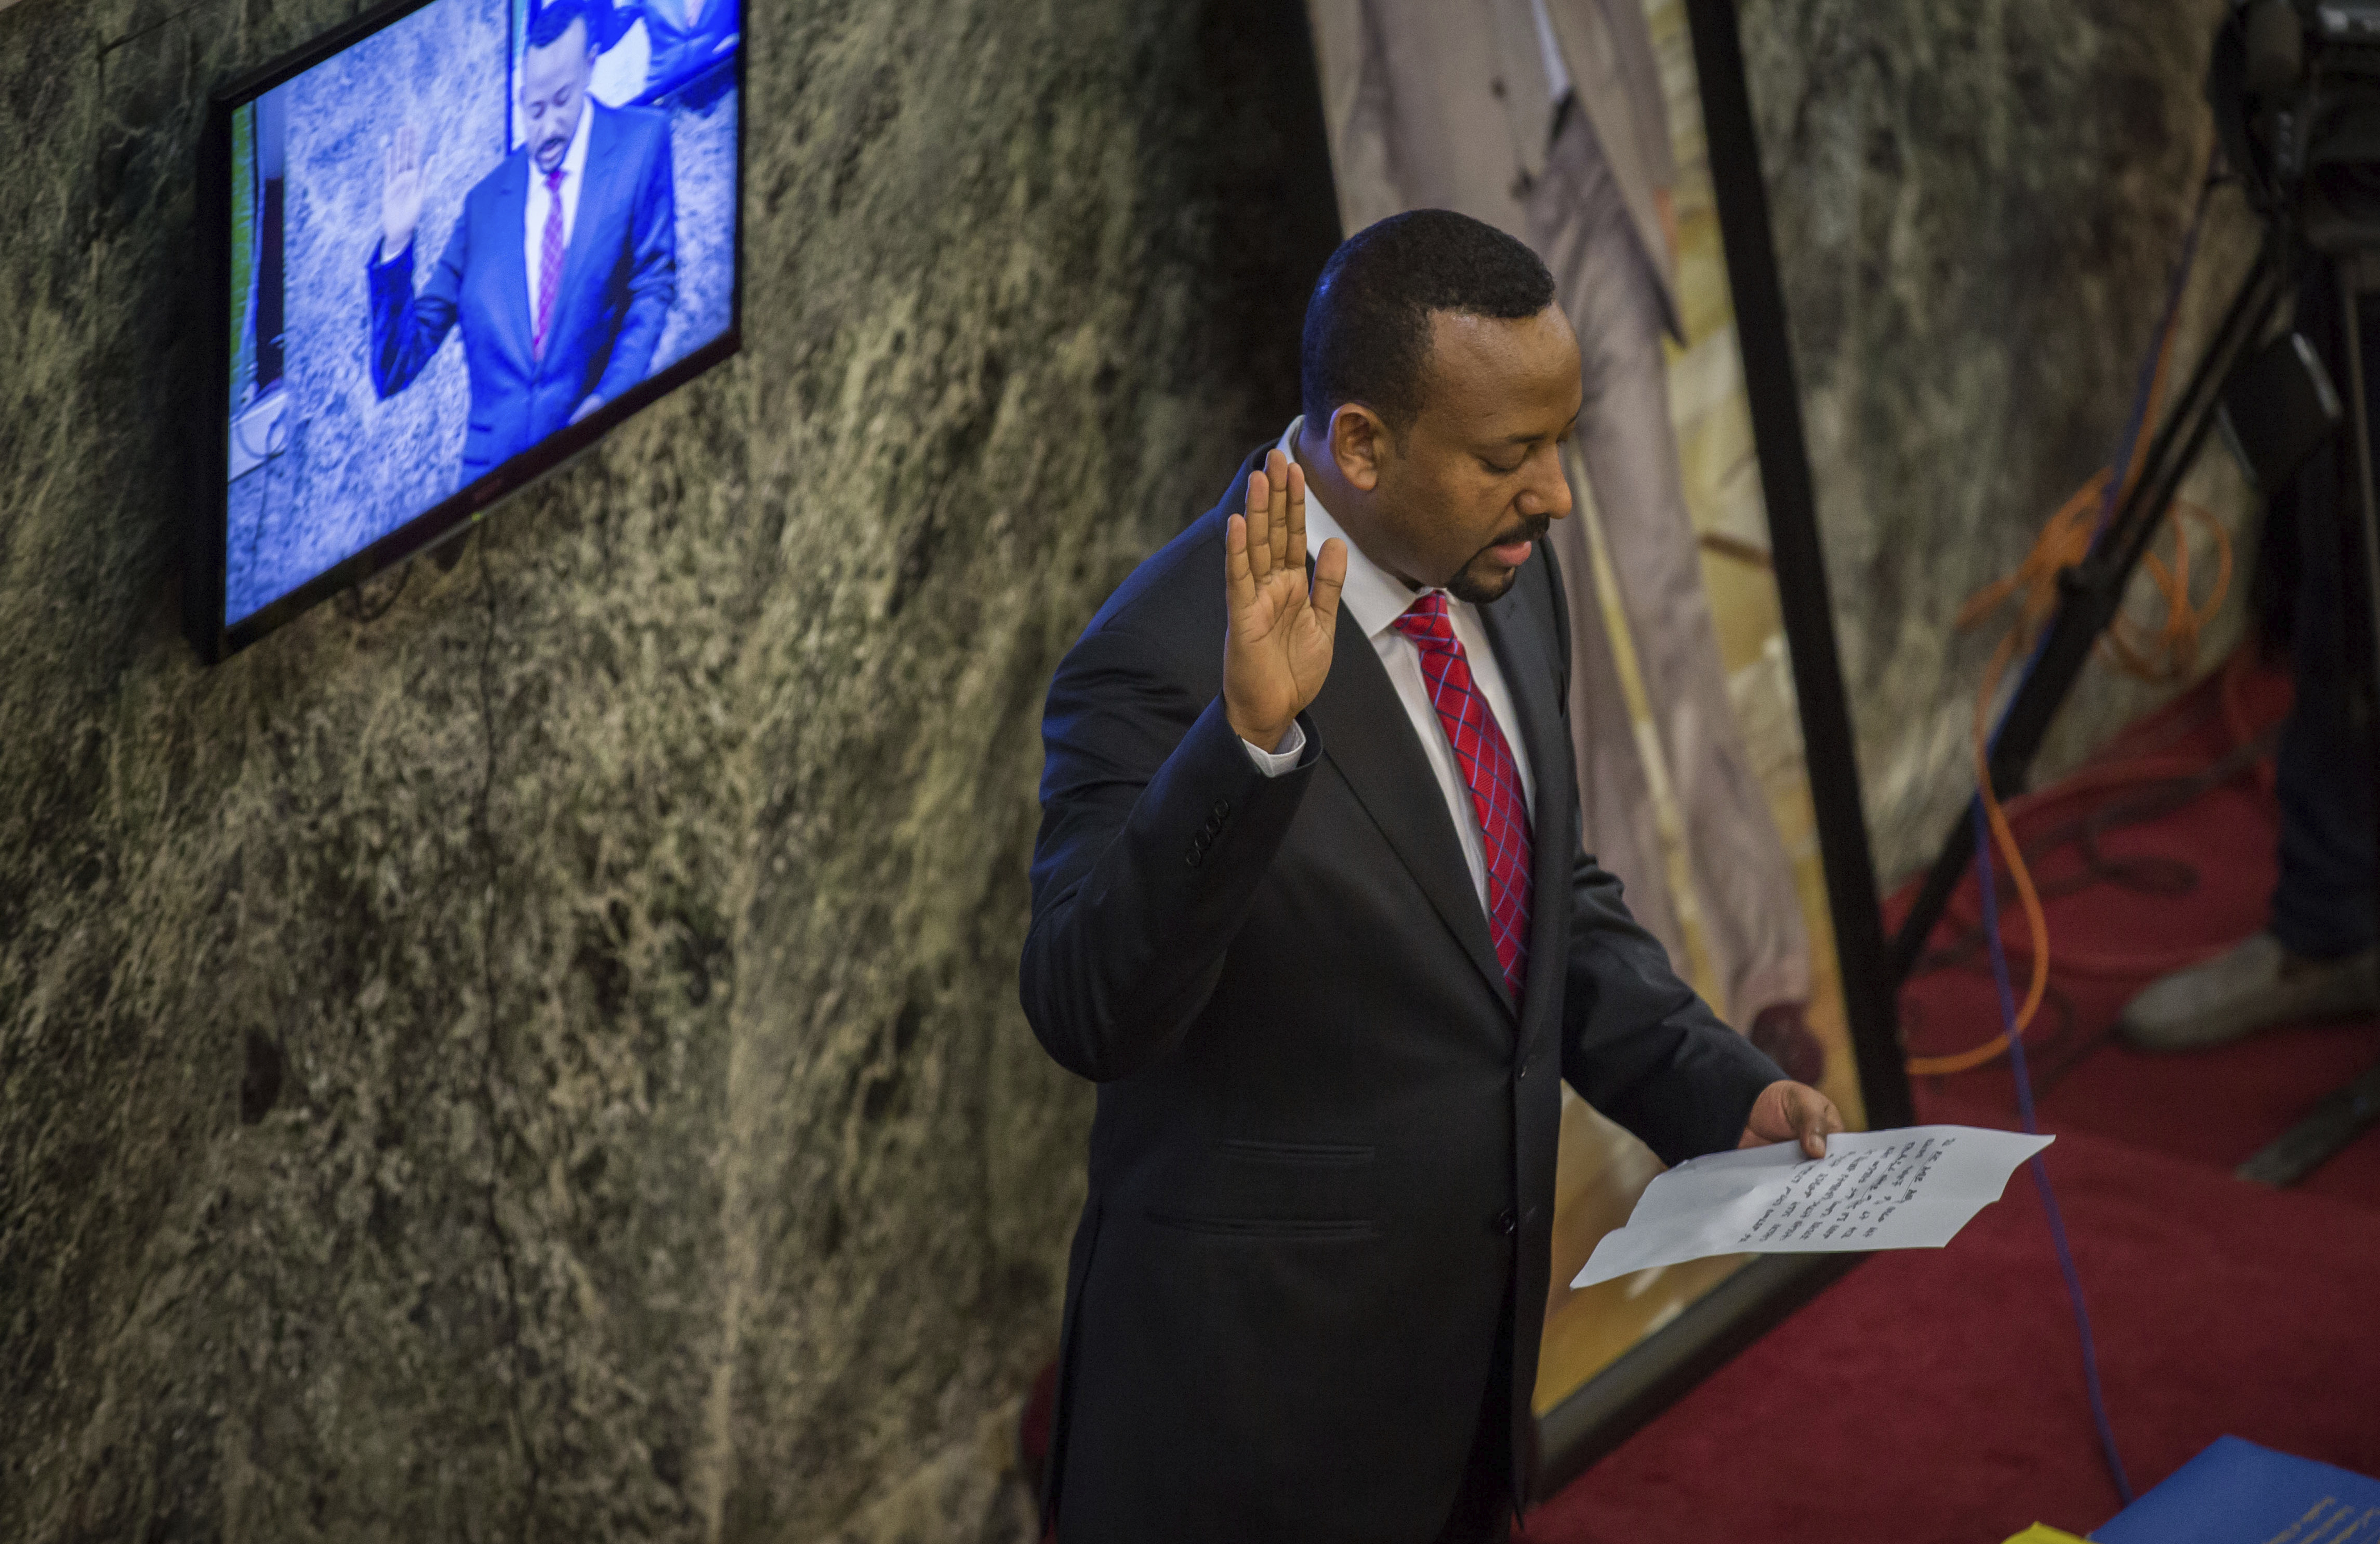 Abiy Ahmed, the newly elected chair of the Ethiopian Peoples' Revolutionary Democratic Front (EPRDF) is sworn in as the country's Prime Minister, Monday, April 2, 2018. Ethiopia's legislature has elected young and outspoken Abiy Amhed as prime minister, amid hopes that he will be able to quell sustained anti-government protests in Africa's second most populous nation.